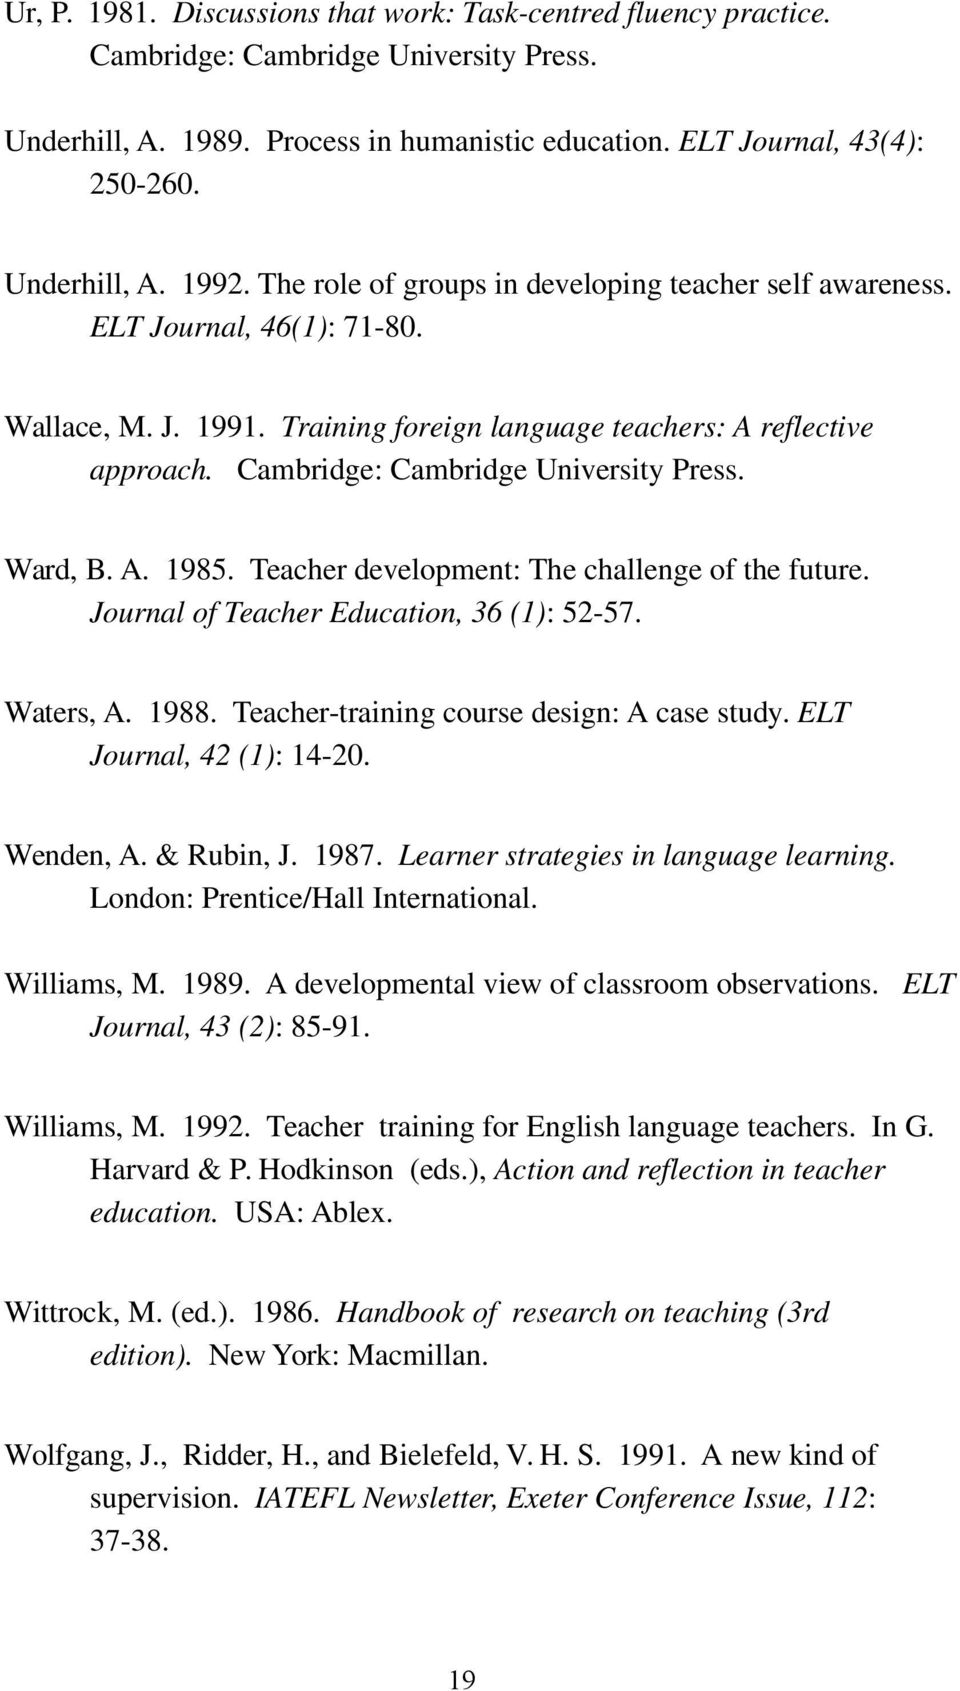 Cambridge: Cambridge University Press. Ward, B. A. 1985. Teacher development: The challenge of the future. Journal of Teacher Education, 36 (1): 52-57. Waters, A. 1988.